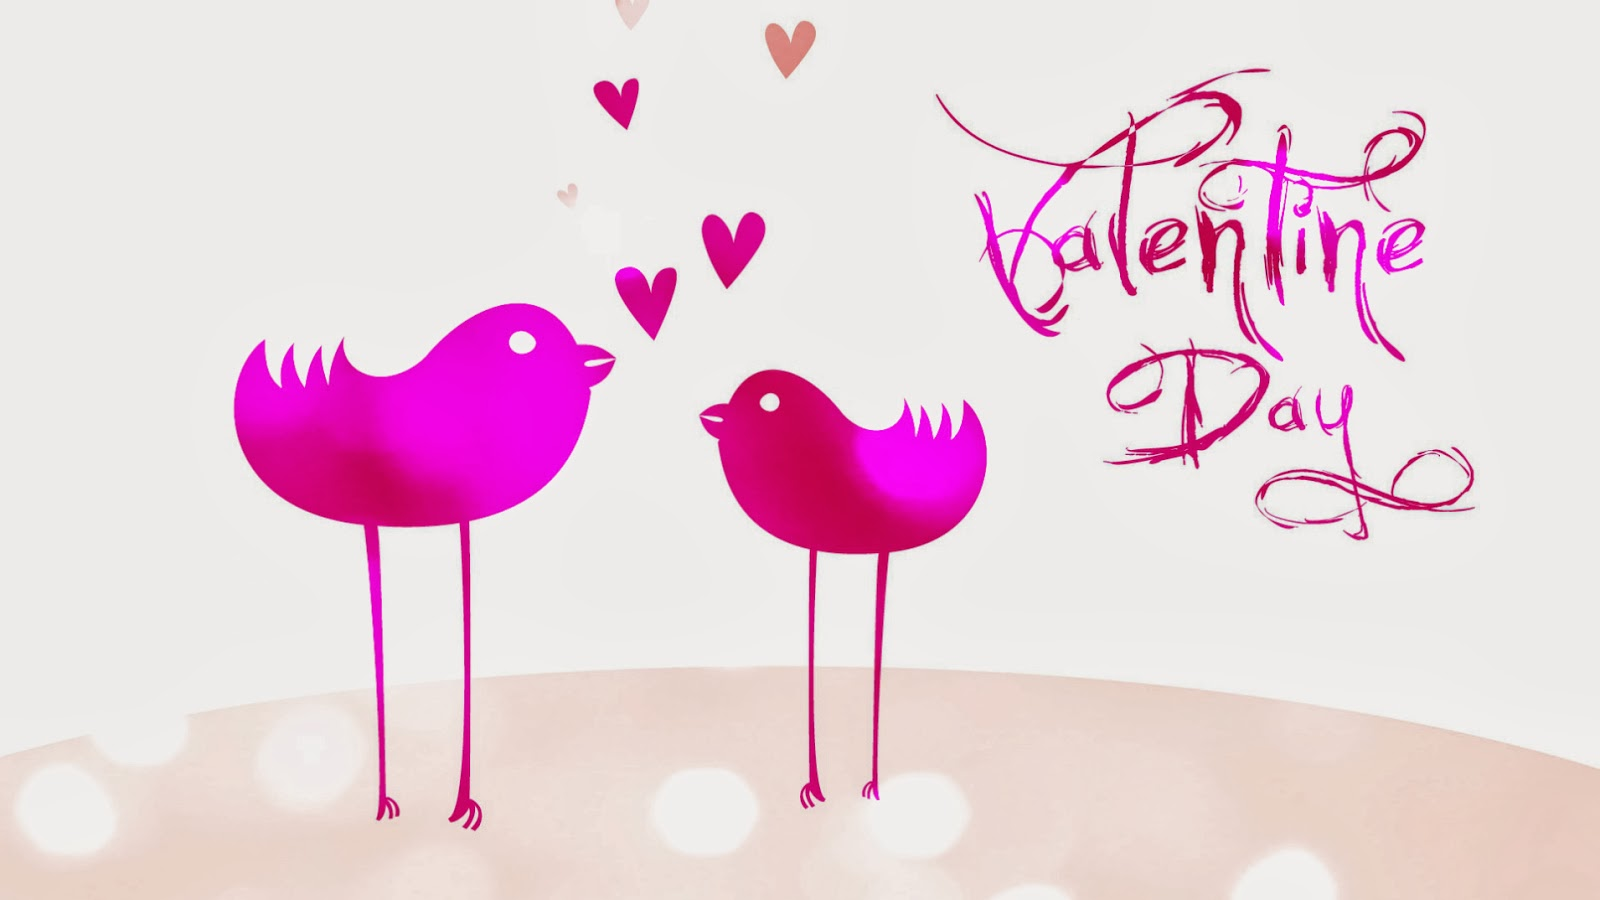 valentines day desktop images